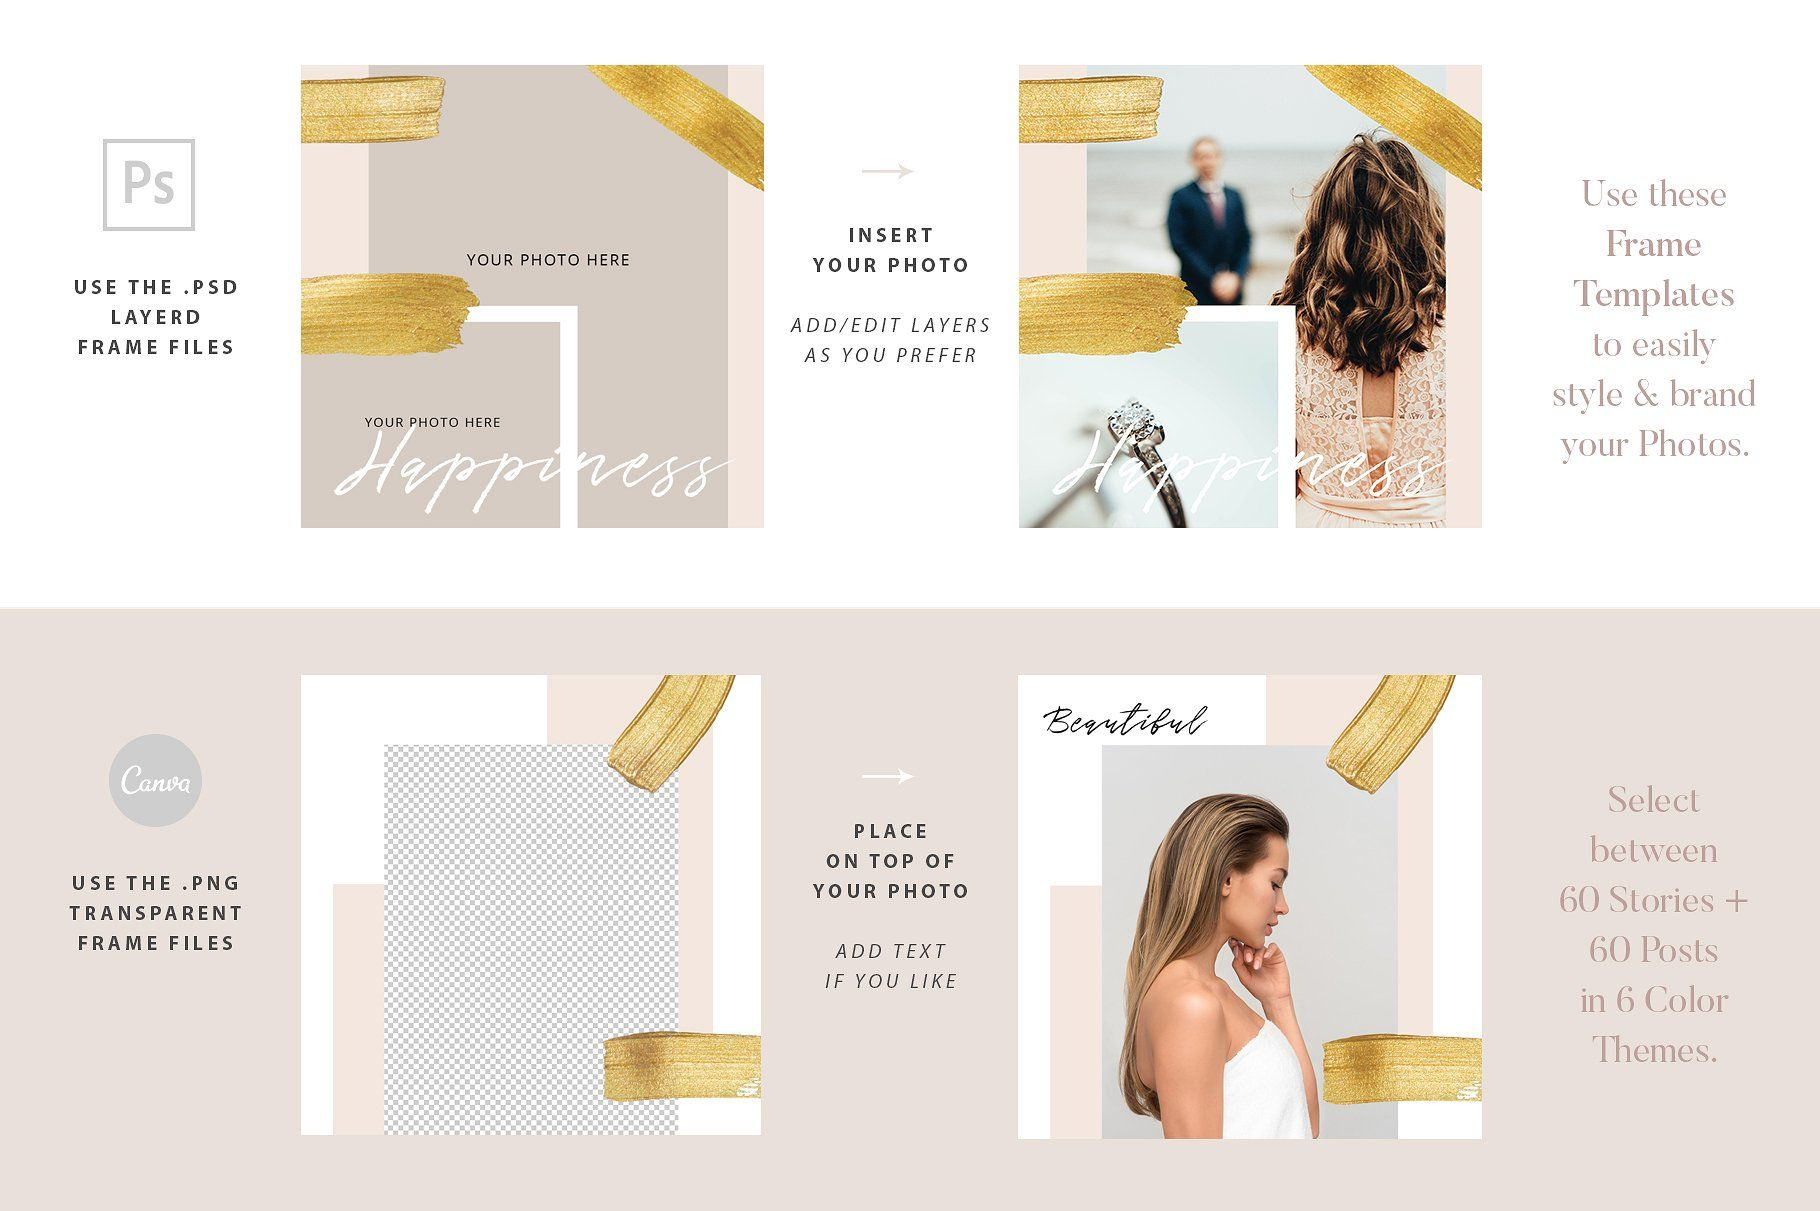 Instagram Photo Frames Templates Color Divided Themes Fits